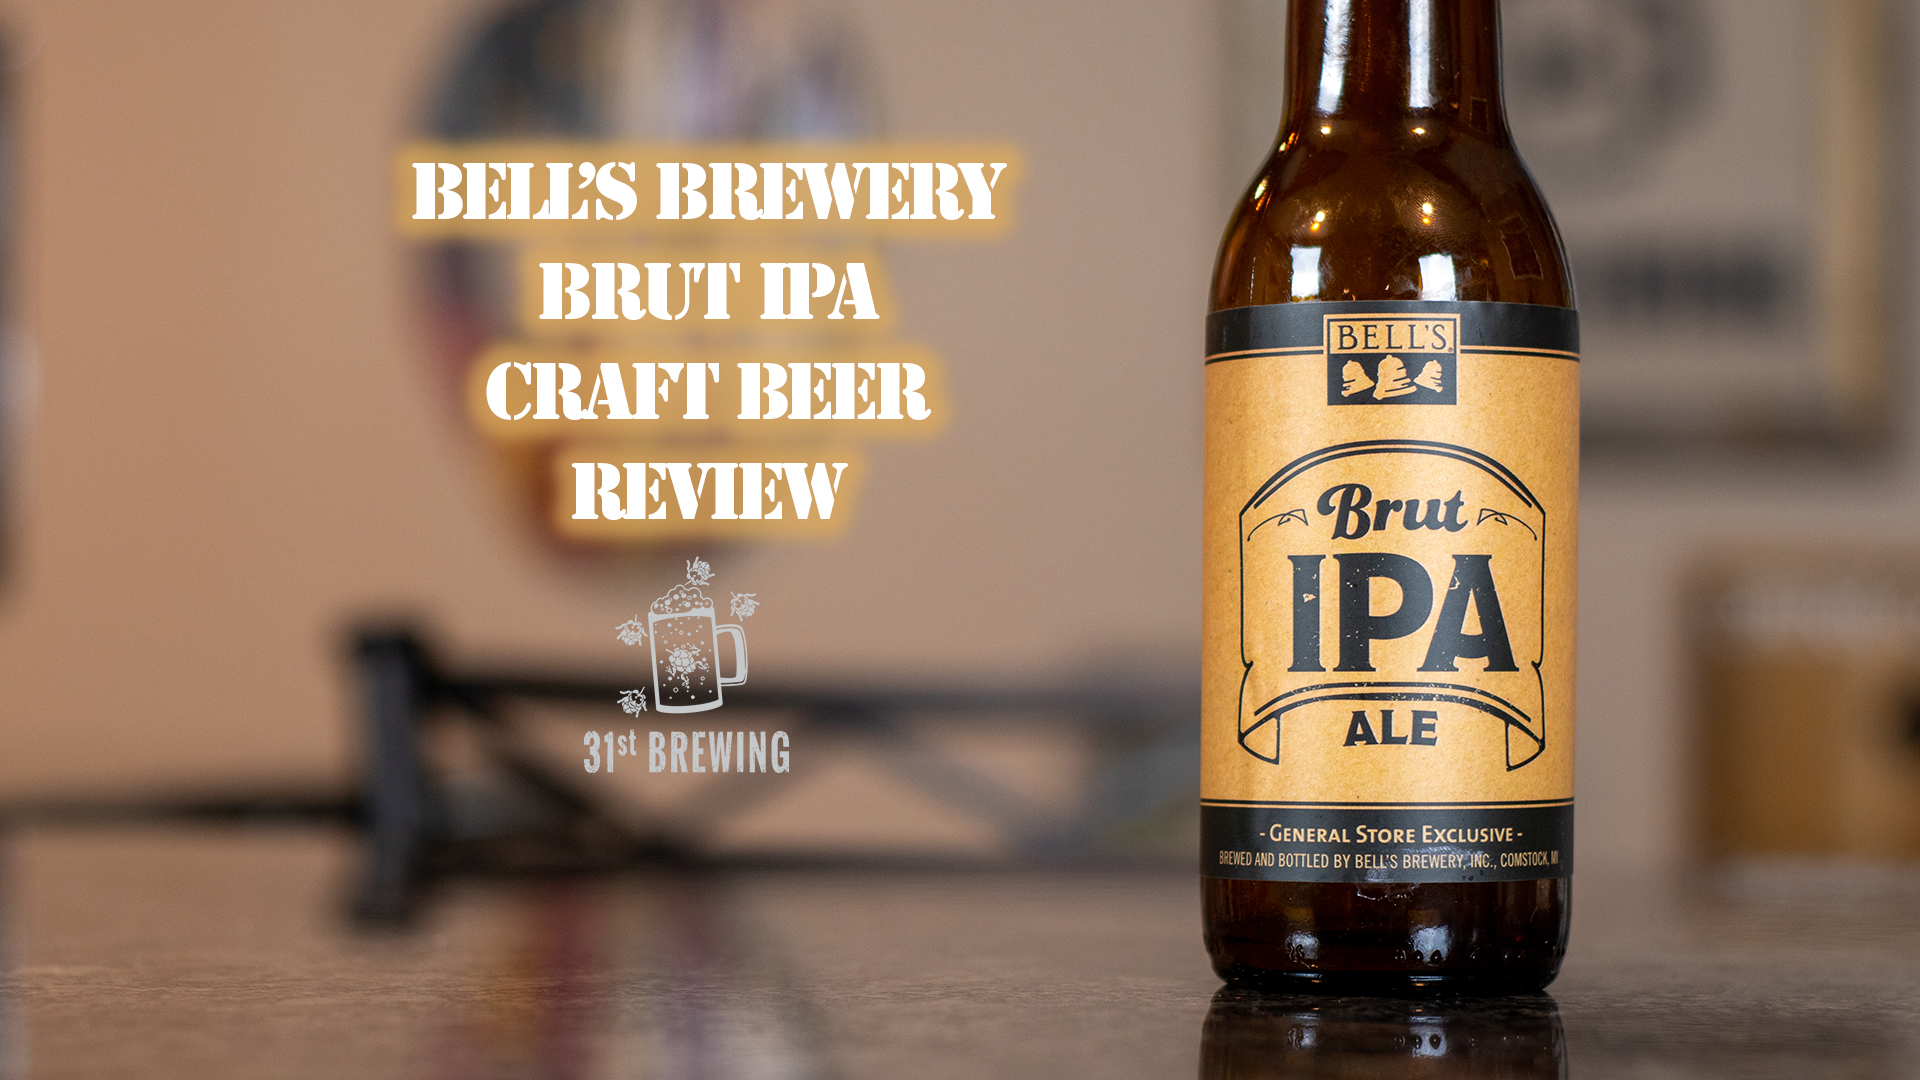 Brut IPA 6% - Want to see the Video Review? Click on the Image